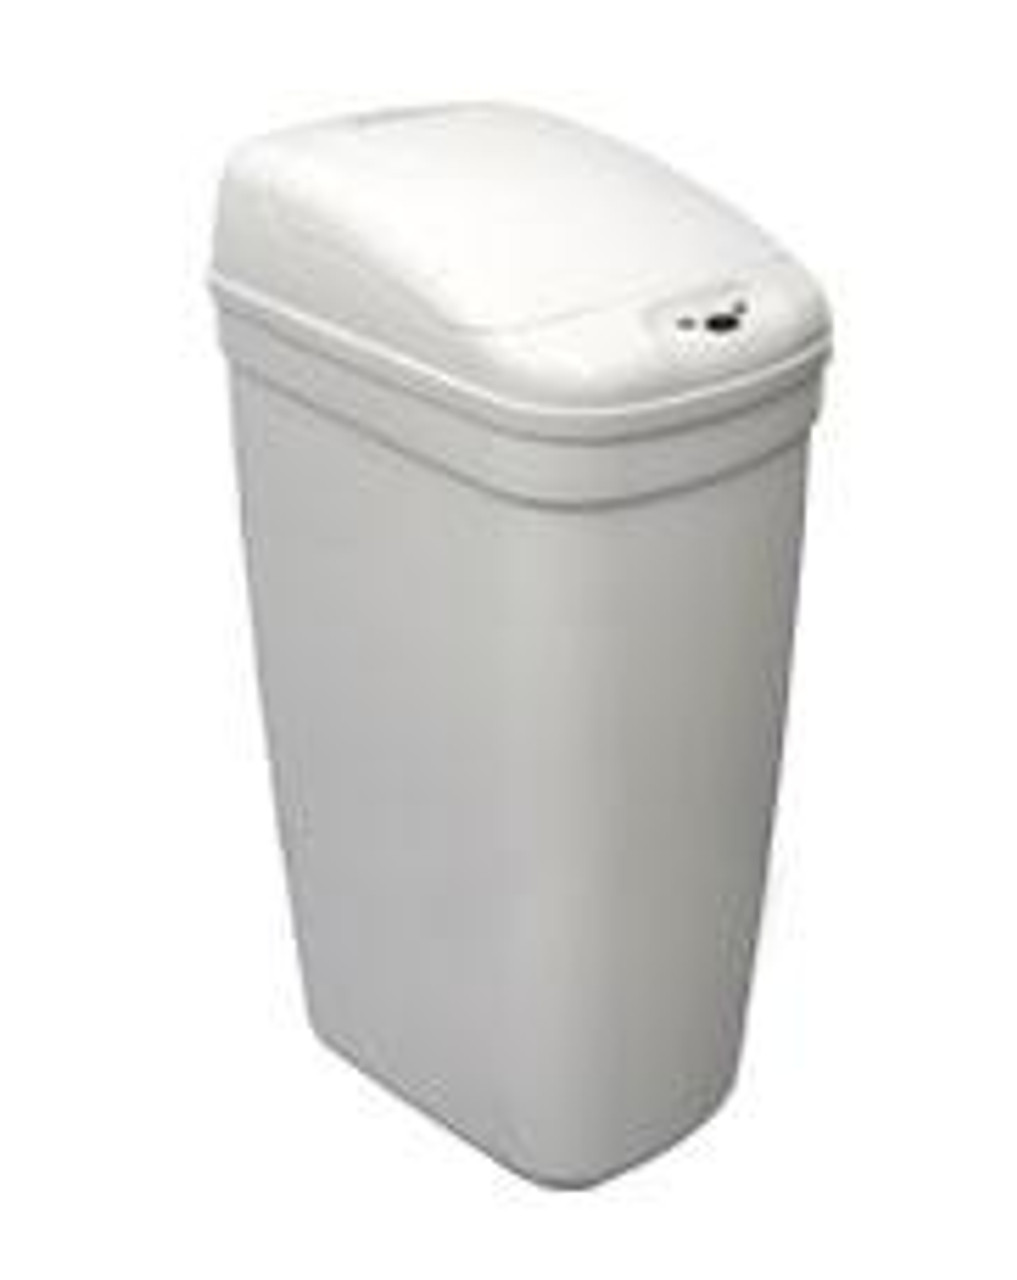 Touchless Automatic Trash Can White 7 Gallon